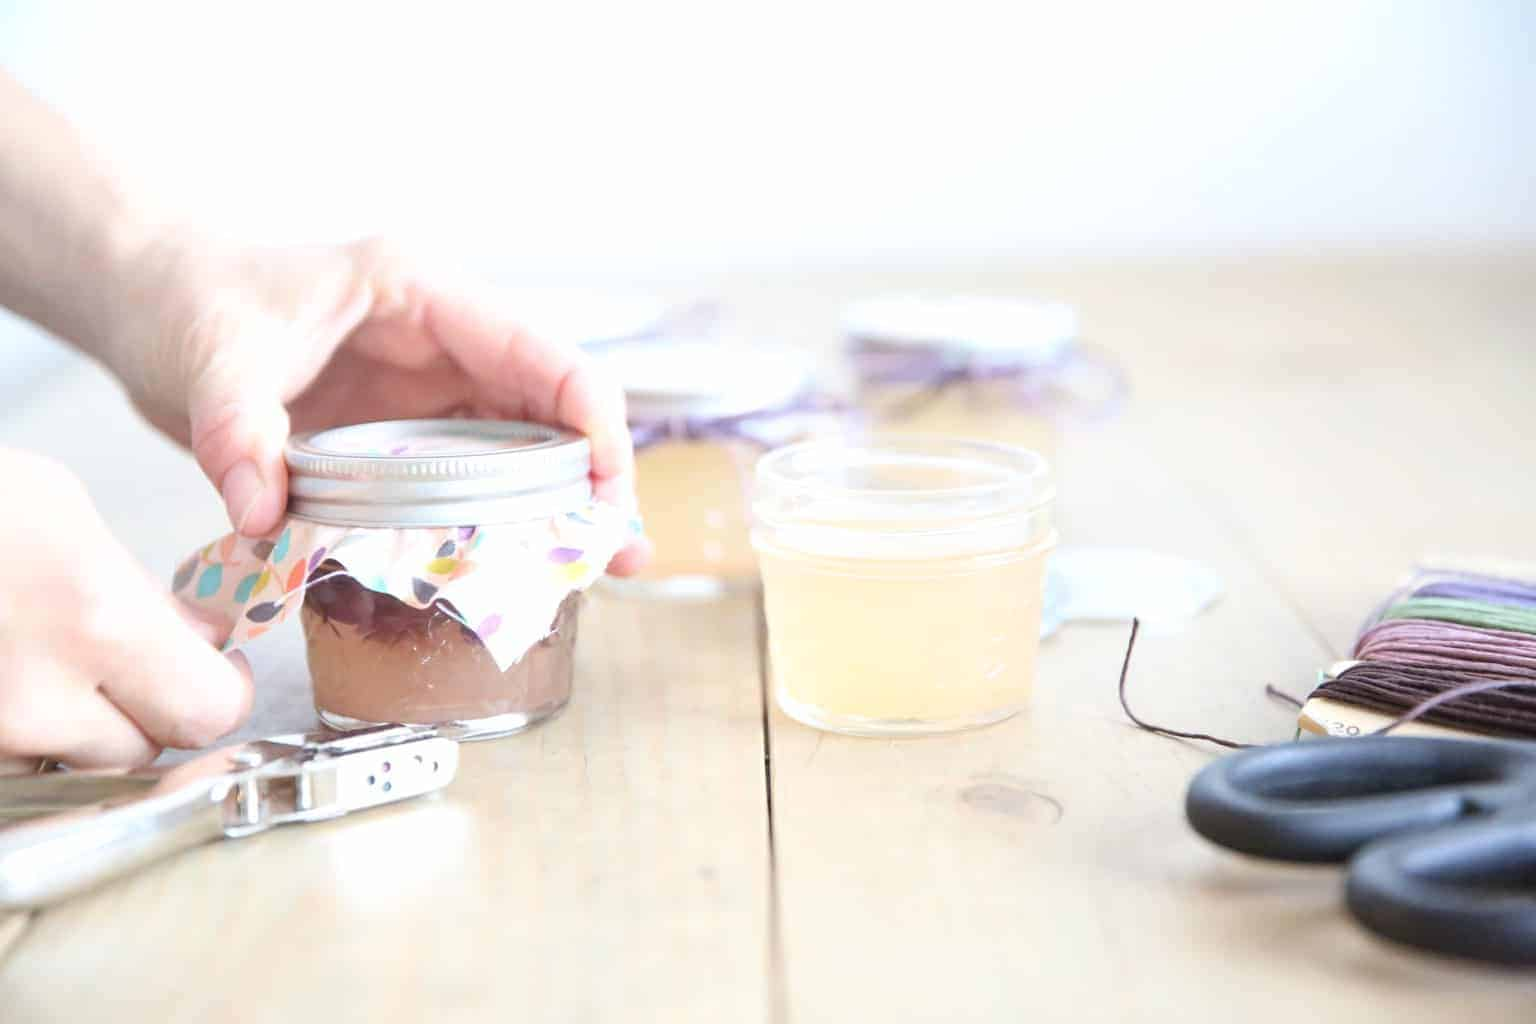 How to make gel air fresheners with essential oils, mason jars, and gelatin.